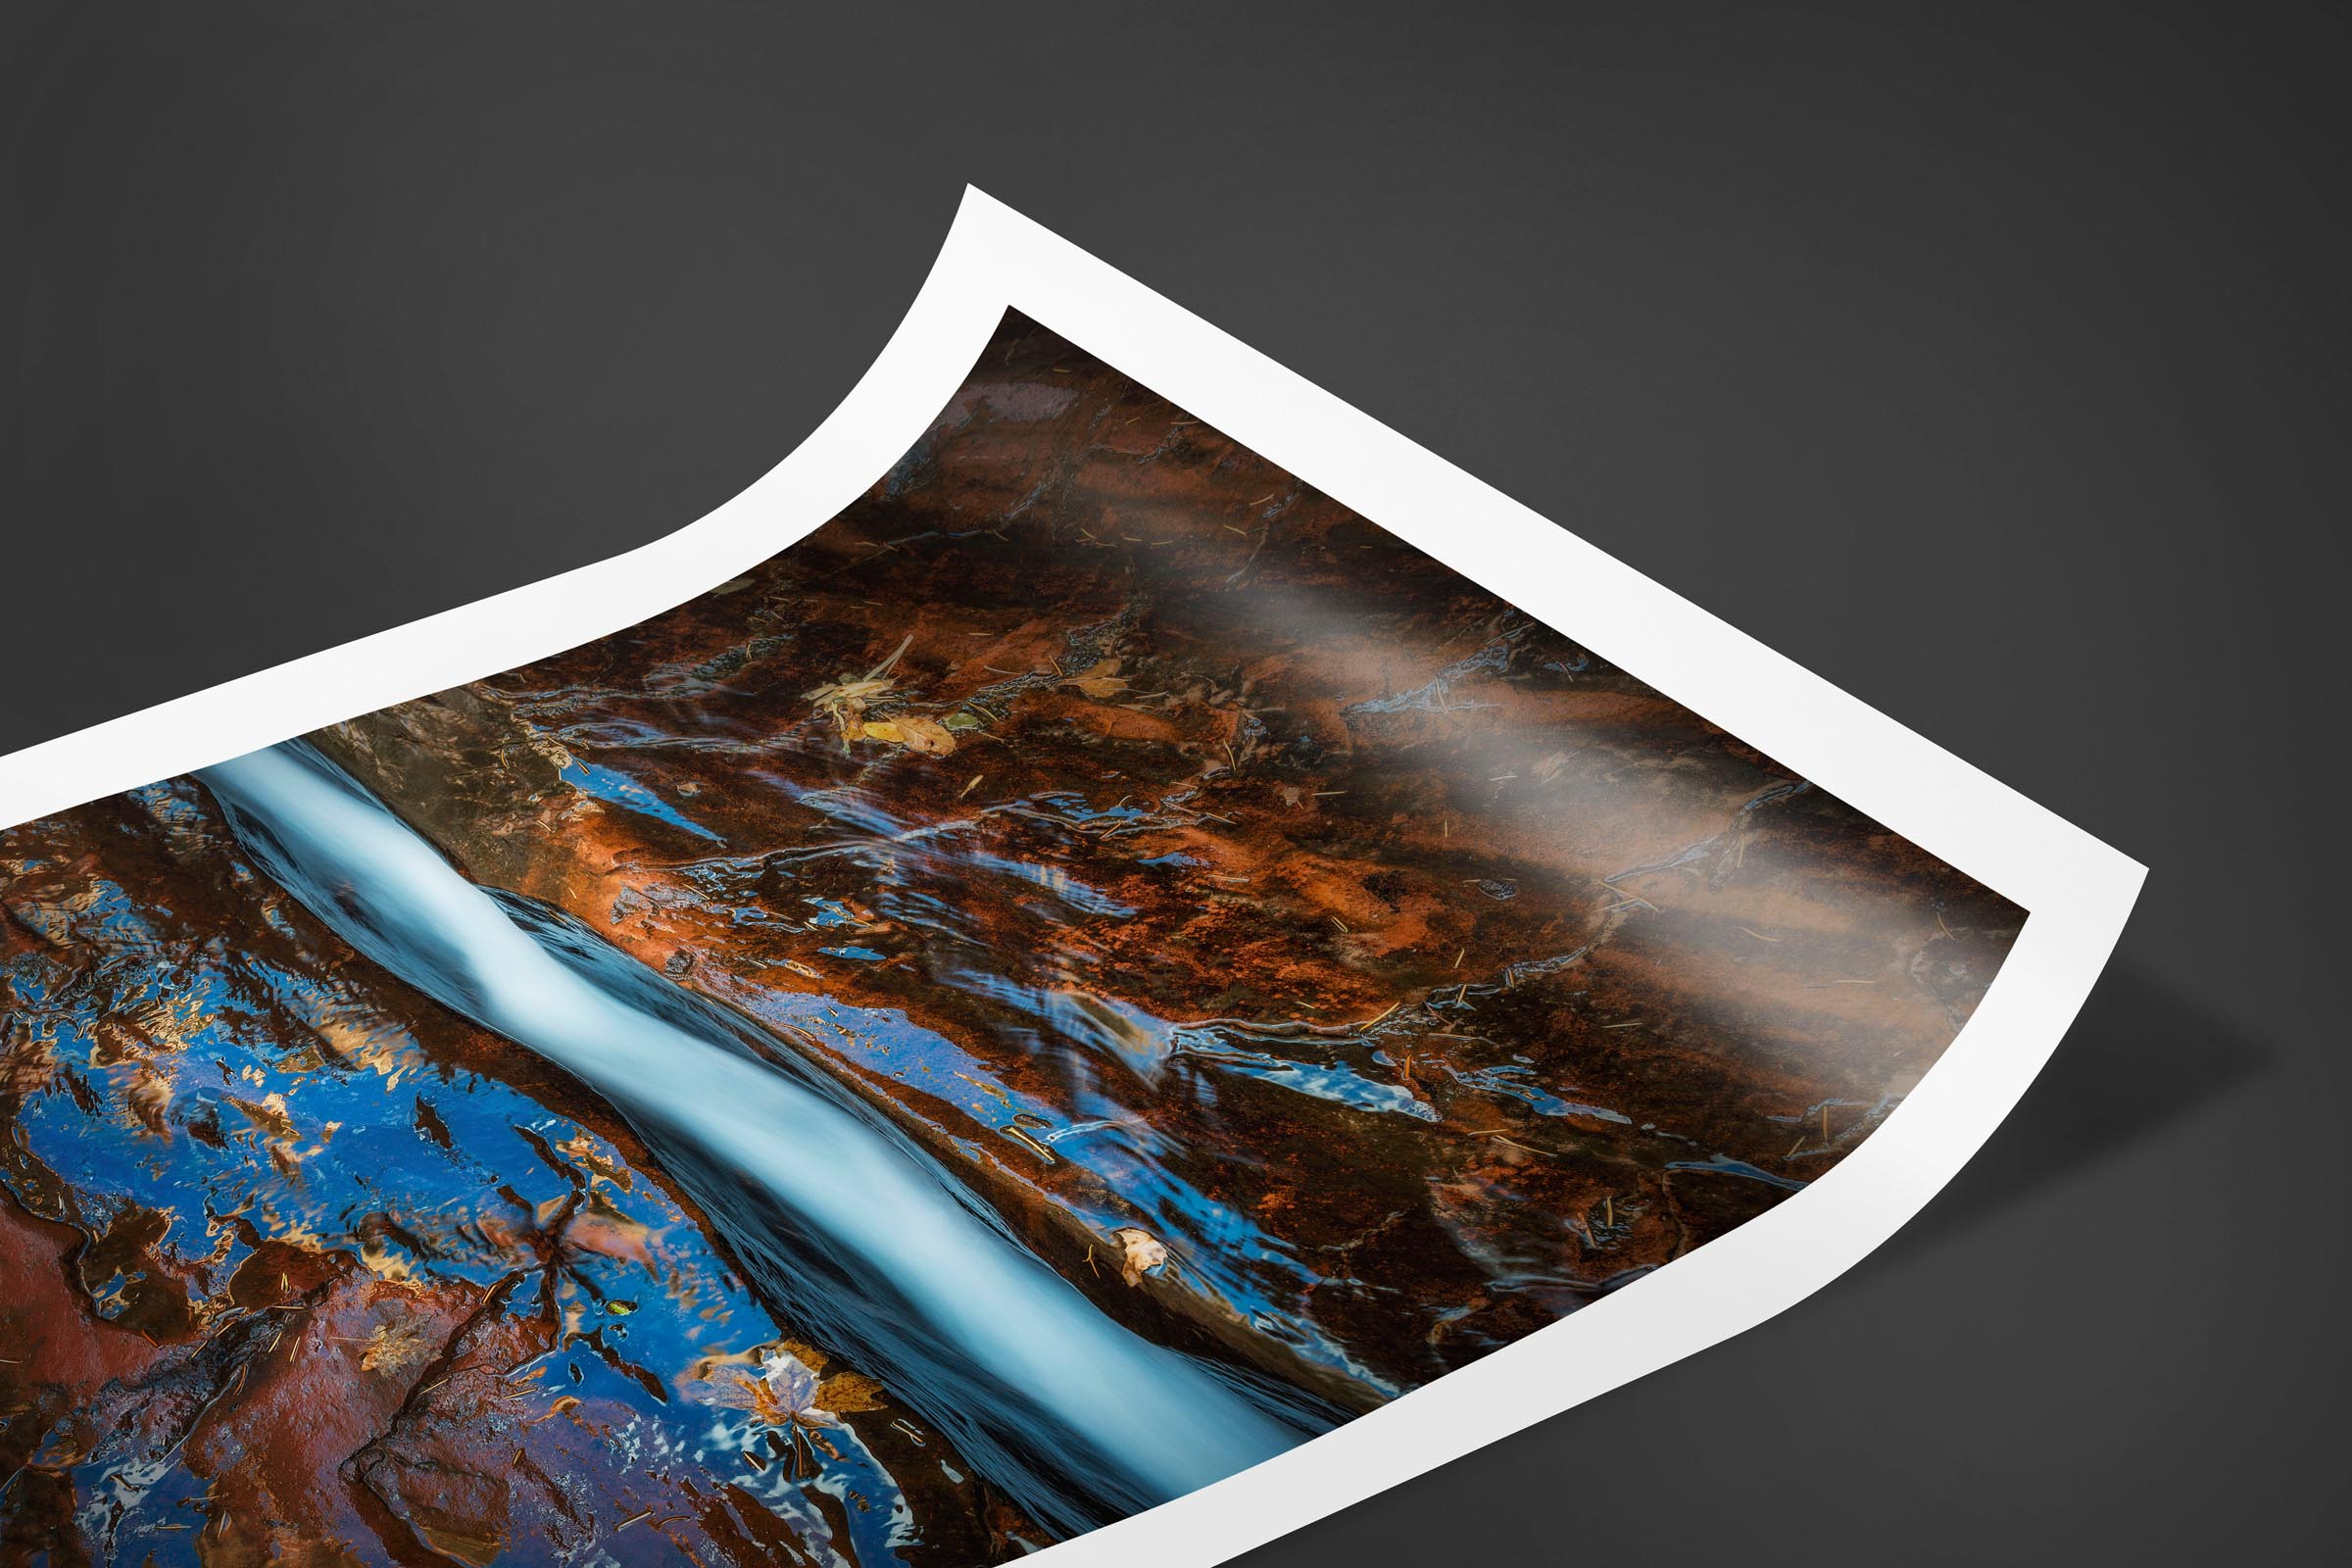 Fine art limited edition print of The Crack in Zion, Utah by Brent Goldman Photography